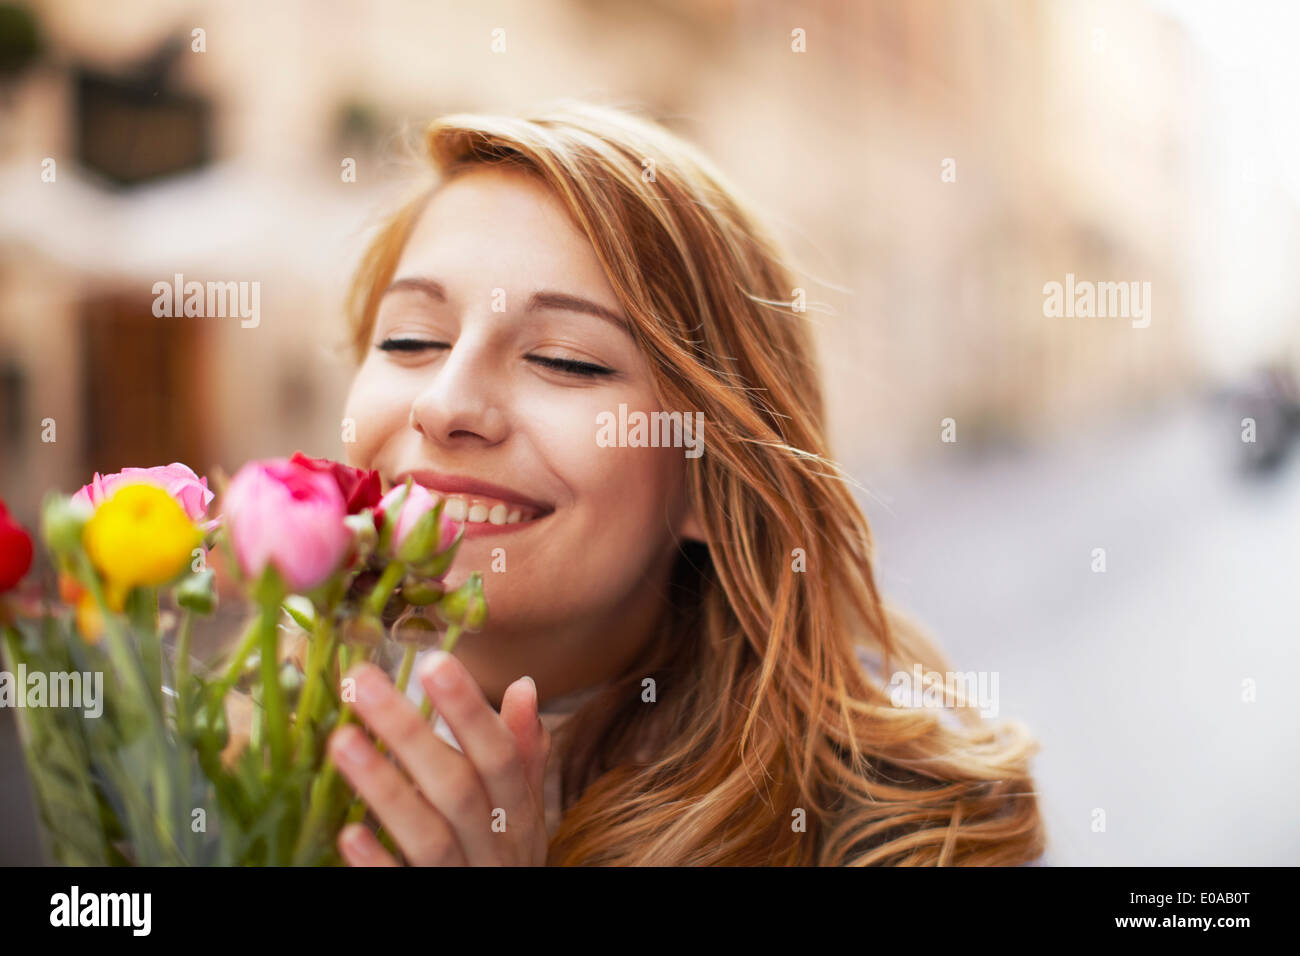 Smiling young woman smelling a bunch of flowers Stock Photo